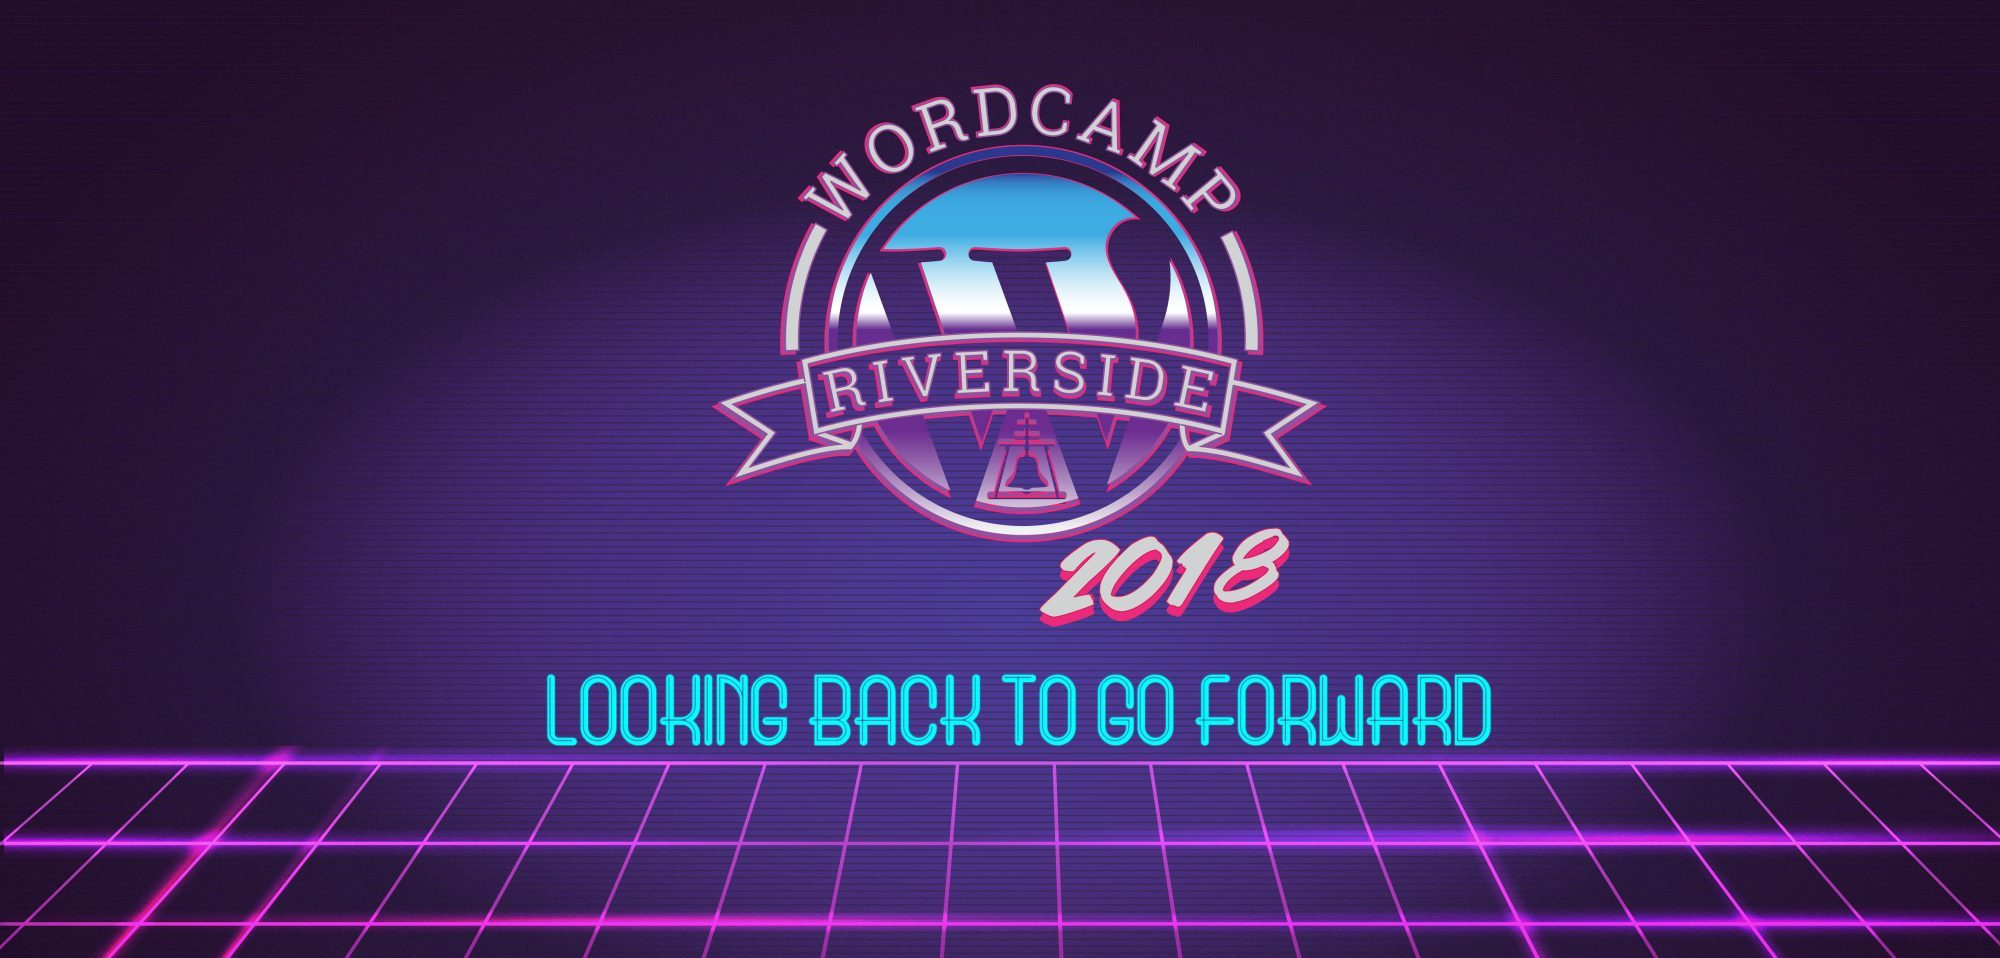 WordCamp Riverside 2018 Banner: Looking Back to Go Forward